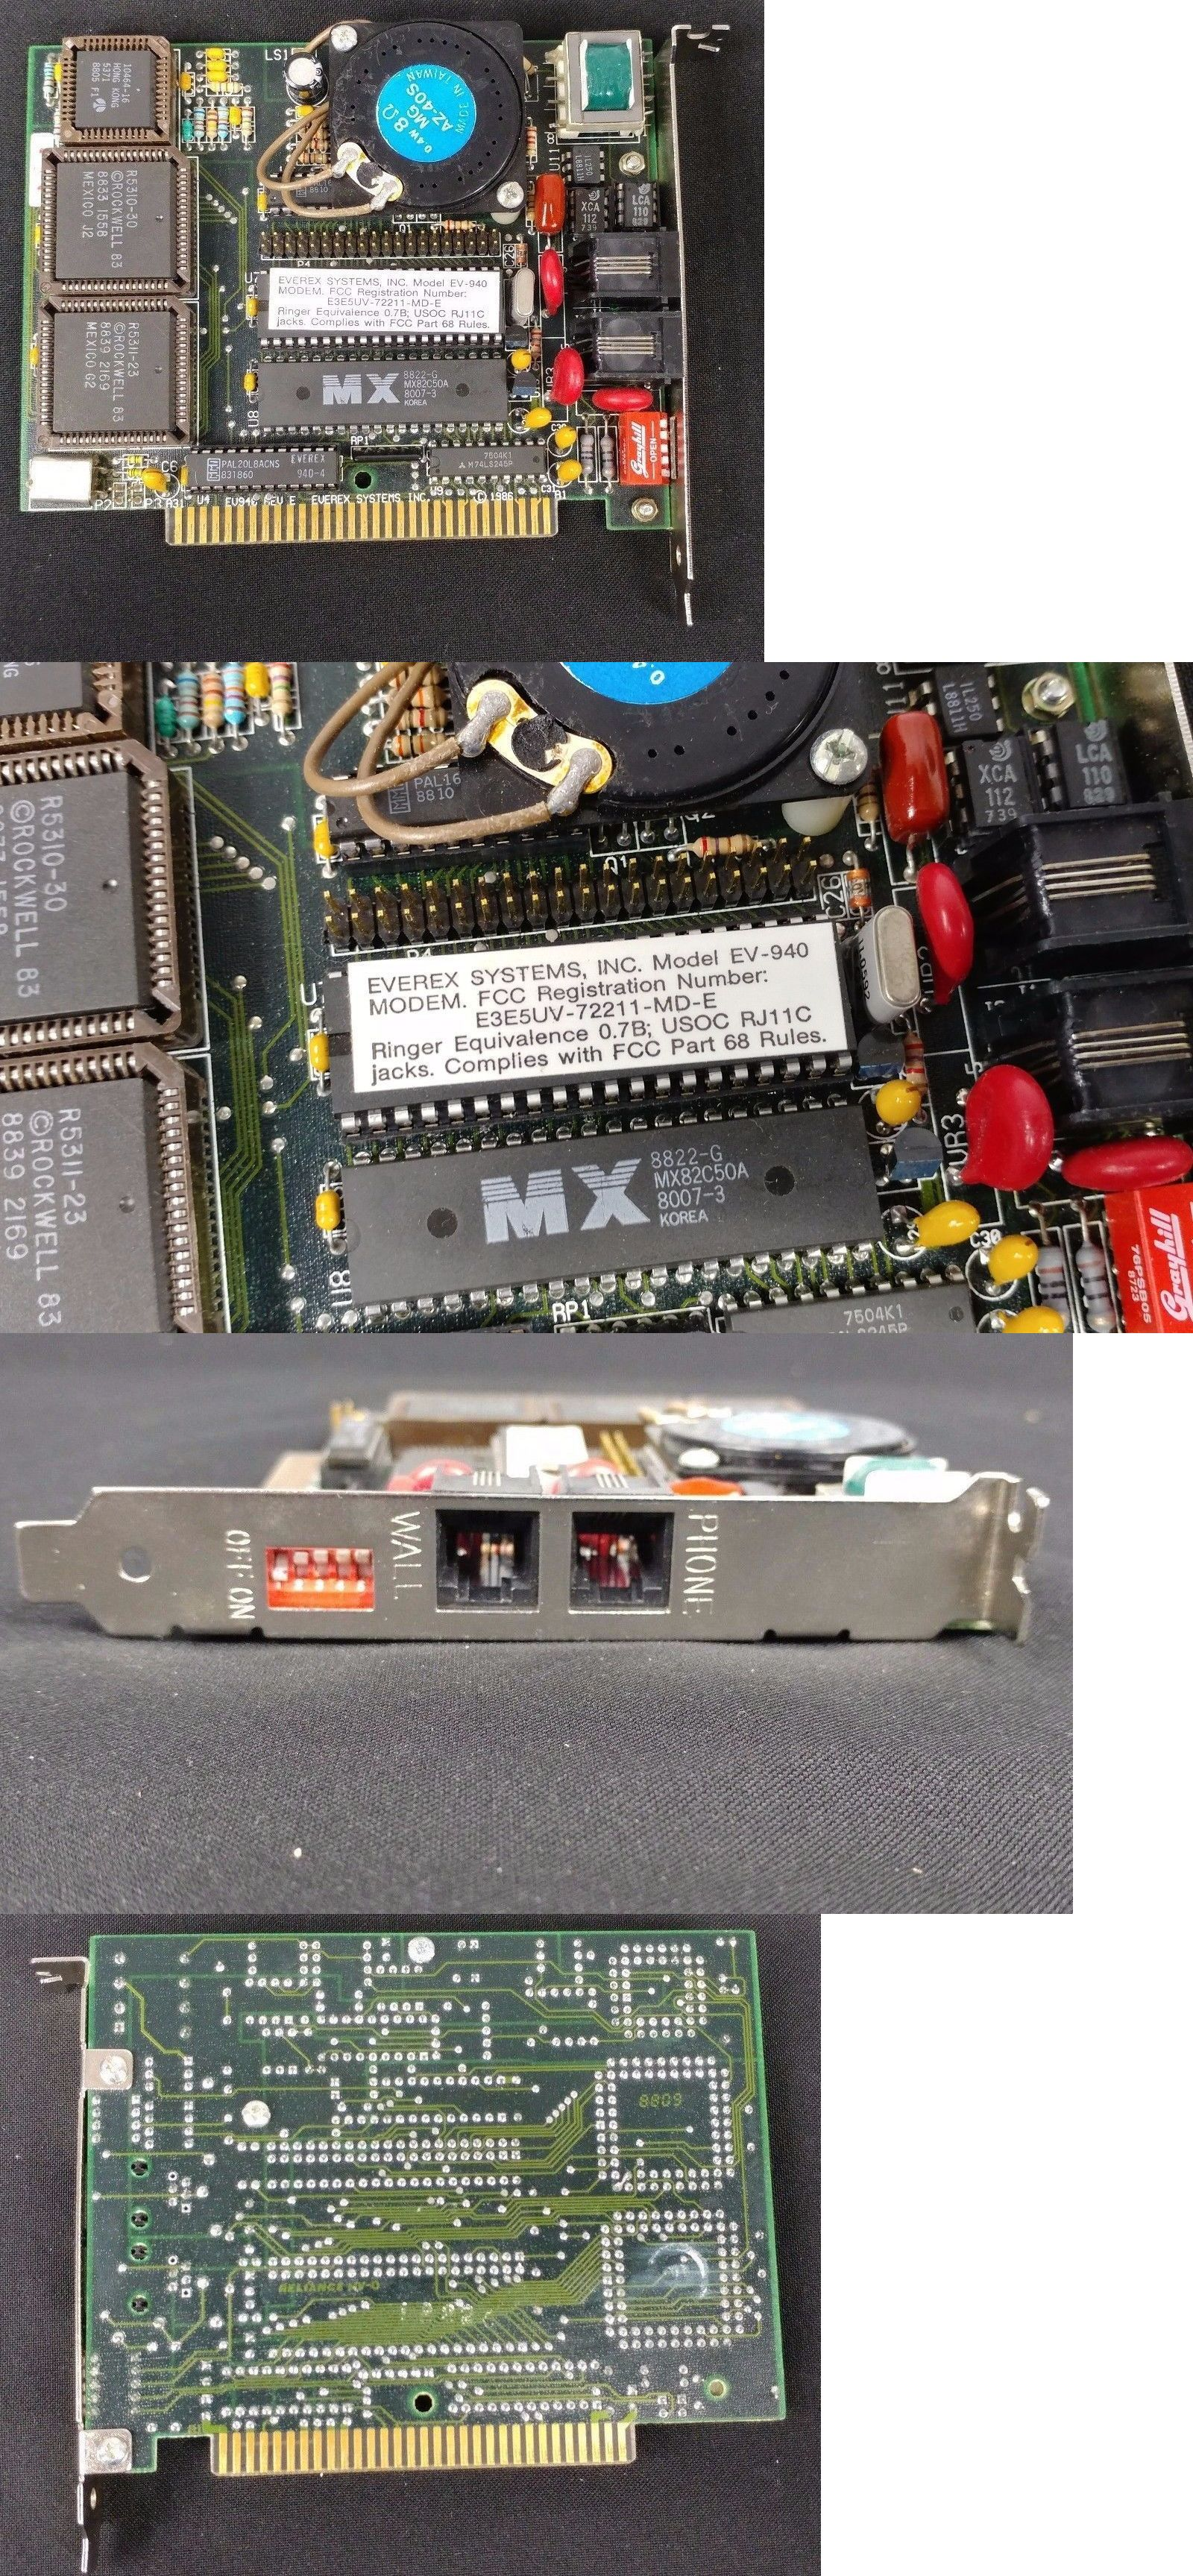 Modem Cards 44940 Vintage Everex Isa 2400 Ev 940 Baud Data Fax Where To Buy Circuit Boards